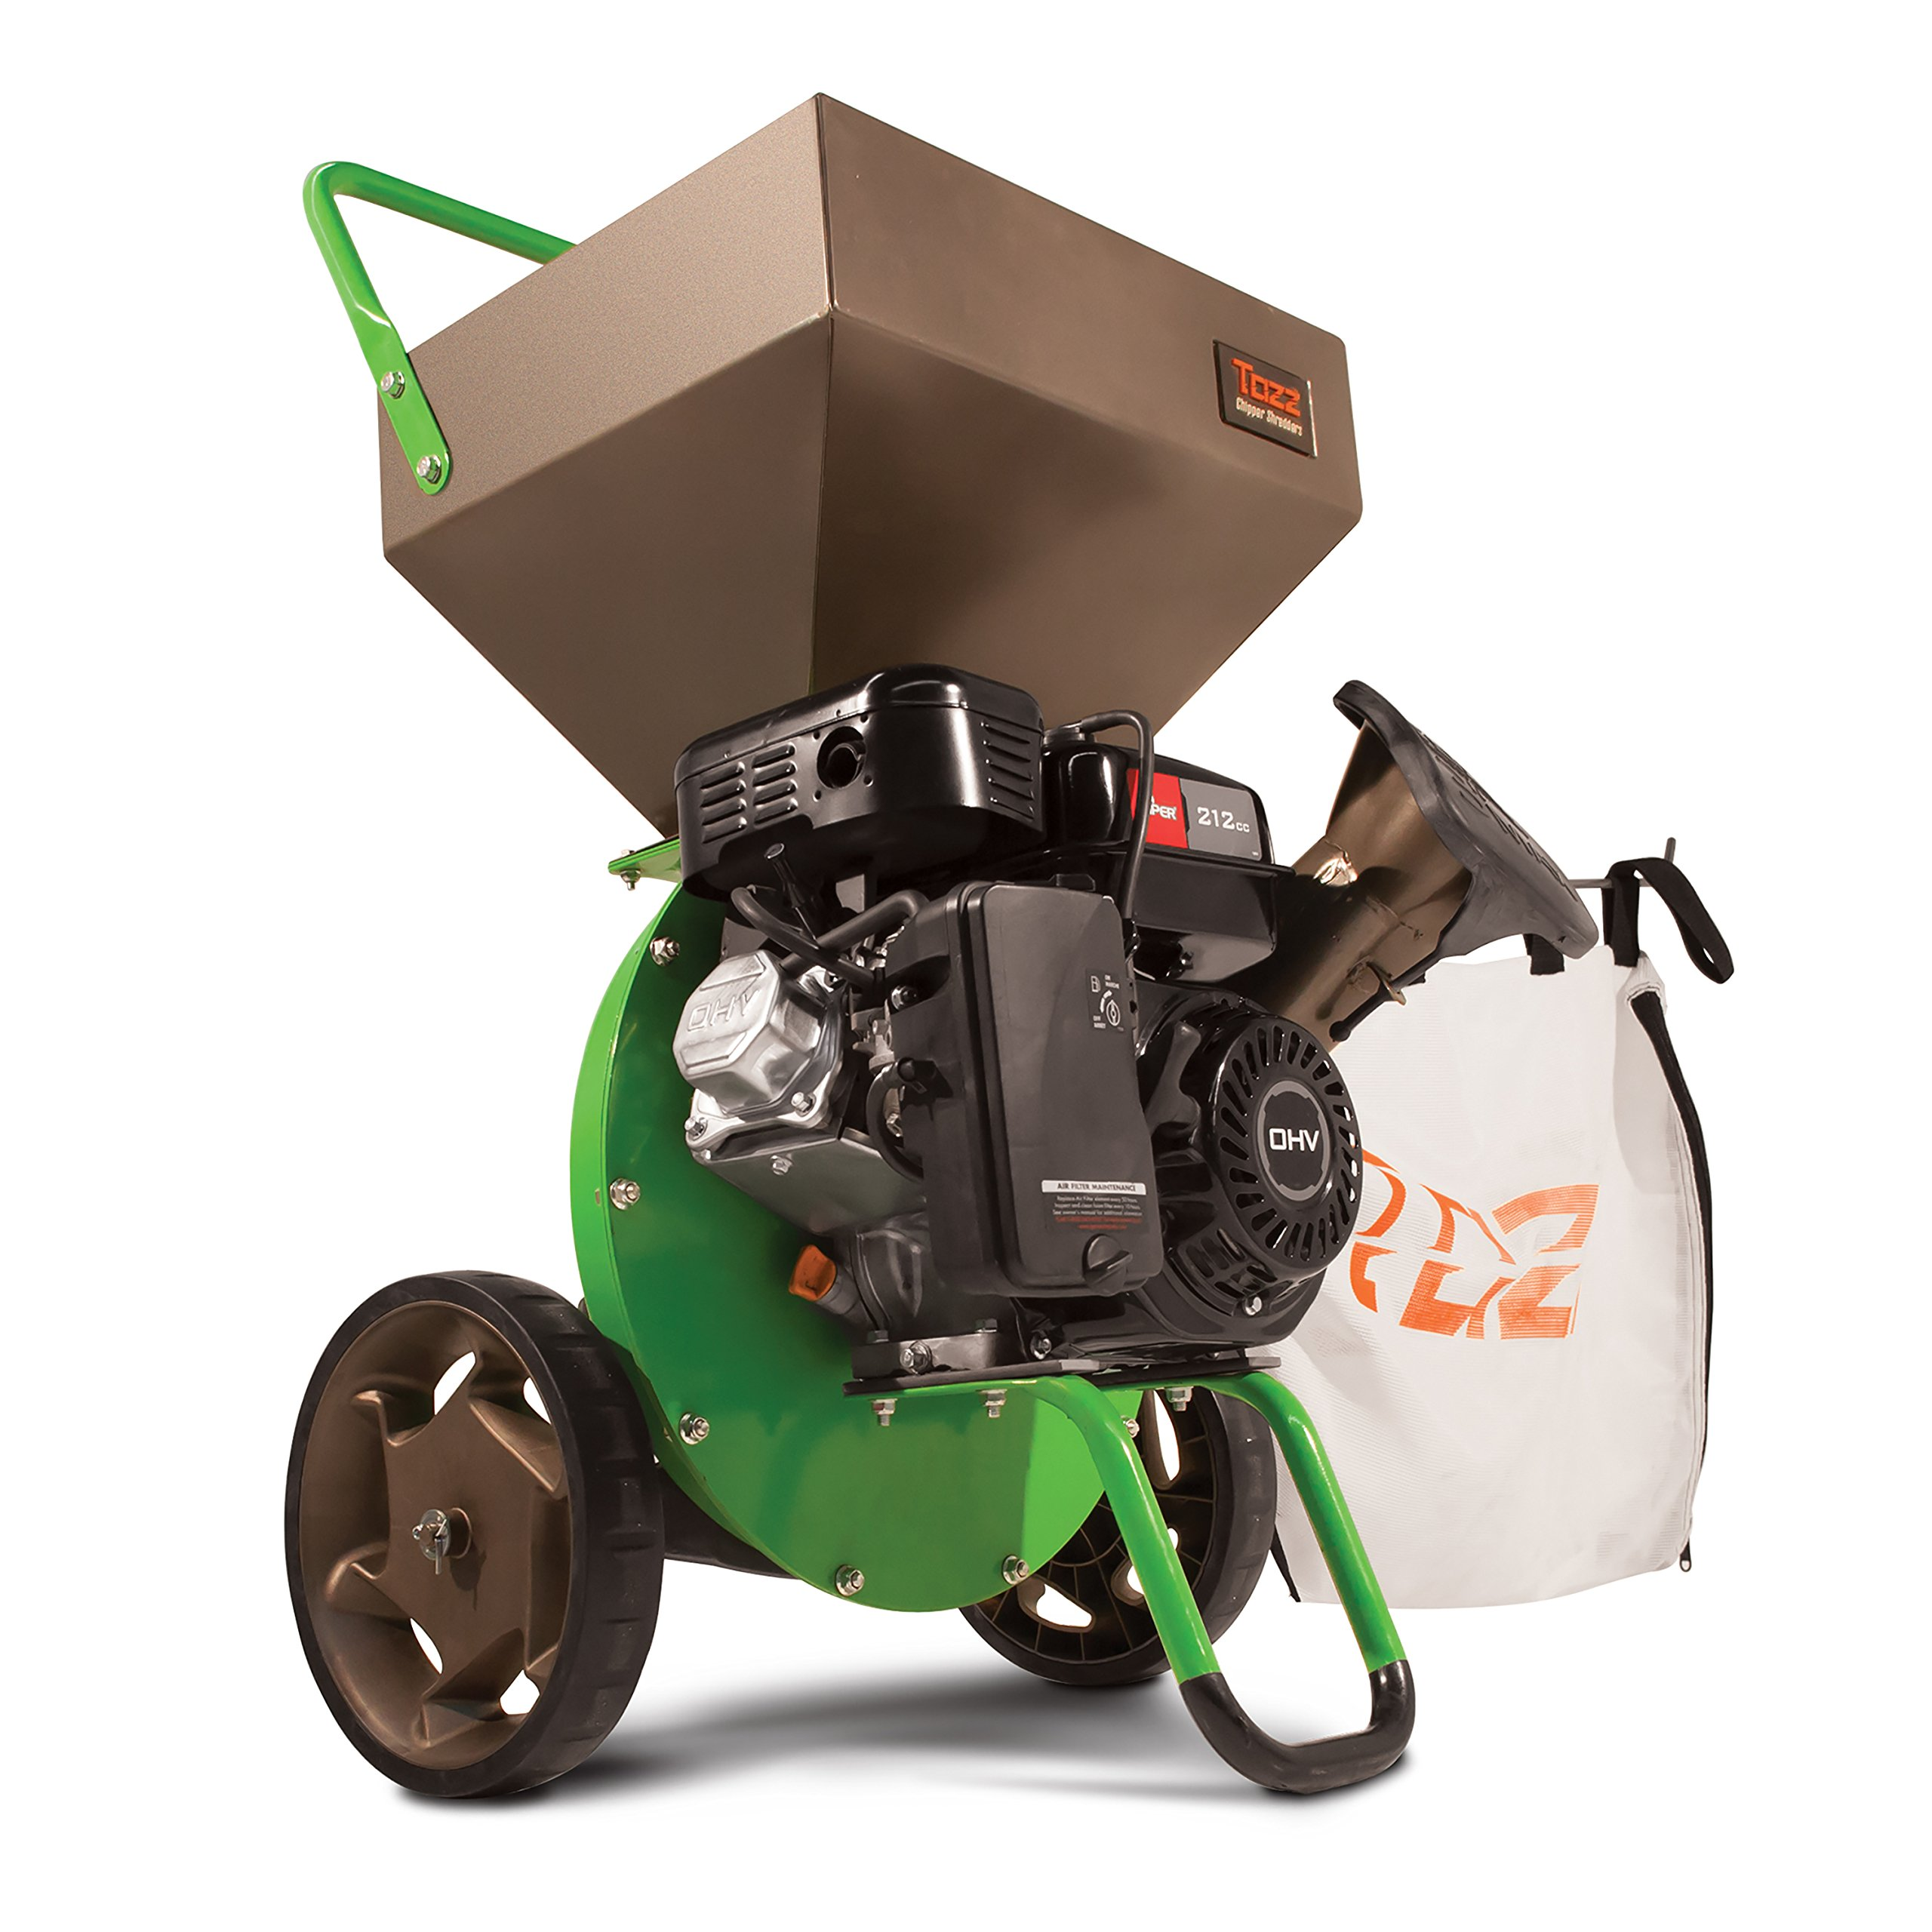 Earthquake TAZZ 30520 Heavy Duty 212cc Gas Powered 4 Cycle Viper Engine 3:1 Capable Multi-Function Wood Chipper Shredder 3'' Max Wood Diameter Capacity, 5 Year Warranty